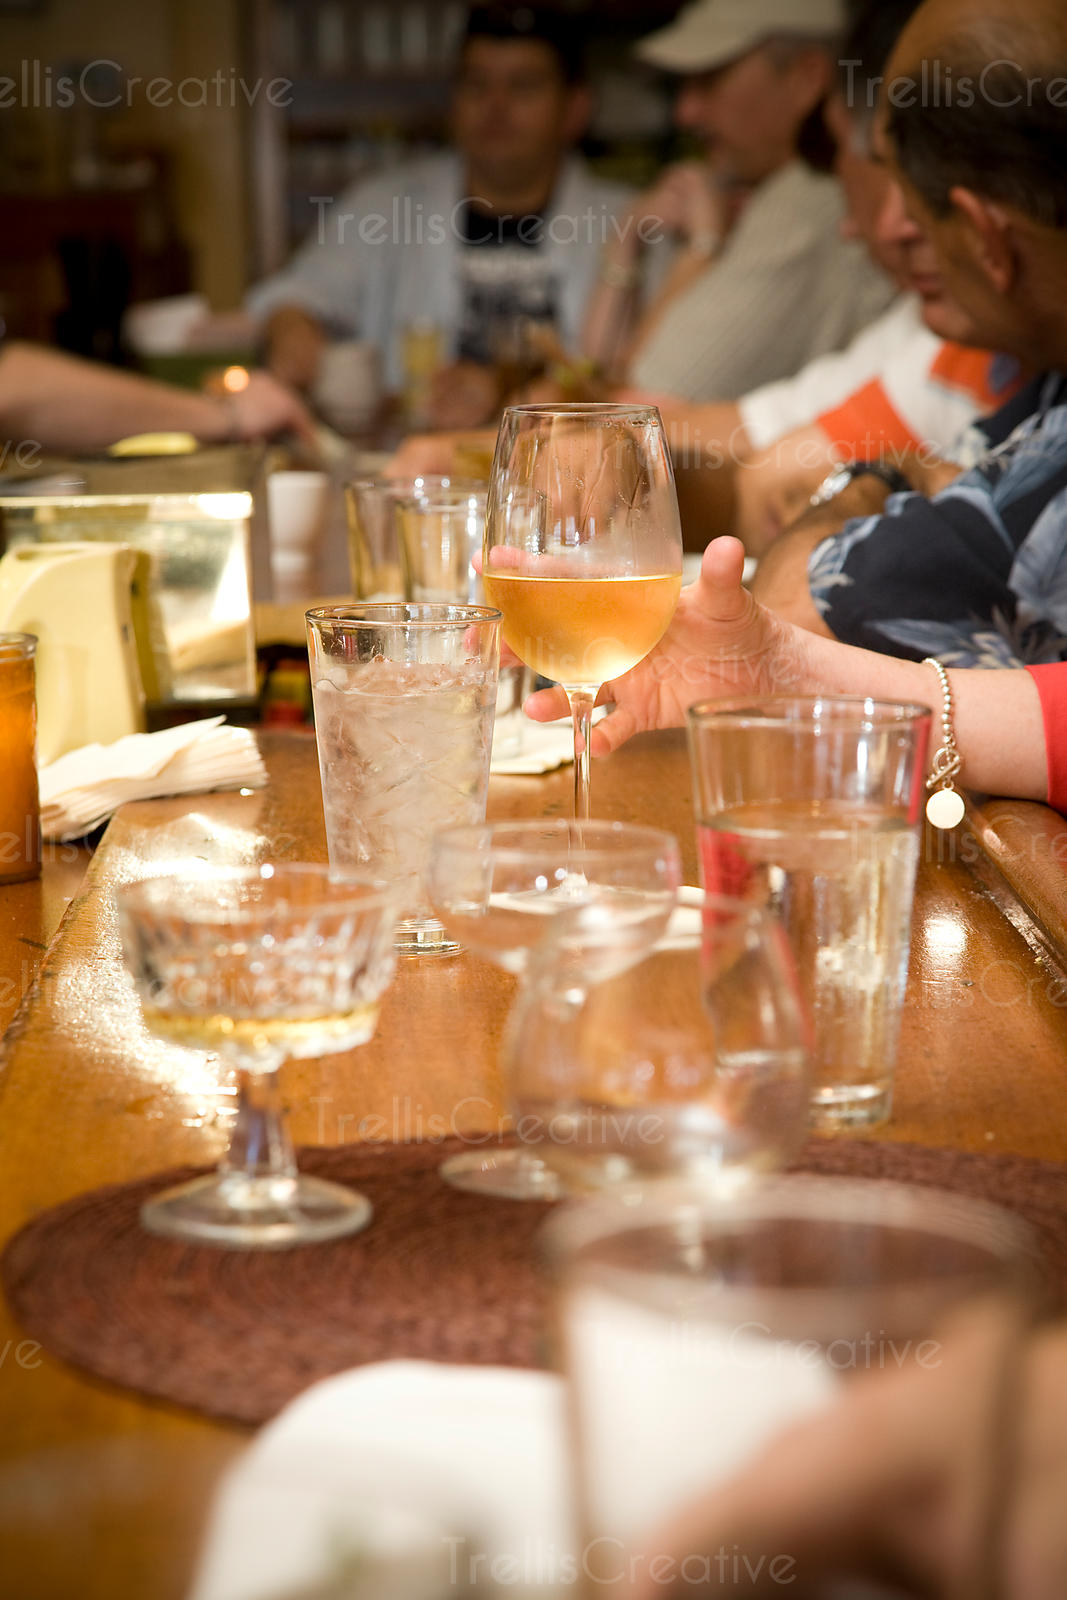 A woman's hand reaches for a glass of white wine on the bar